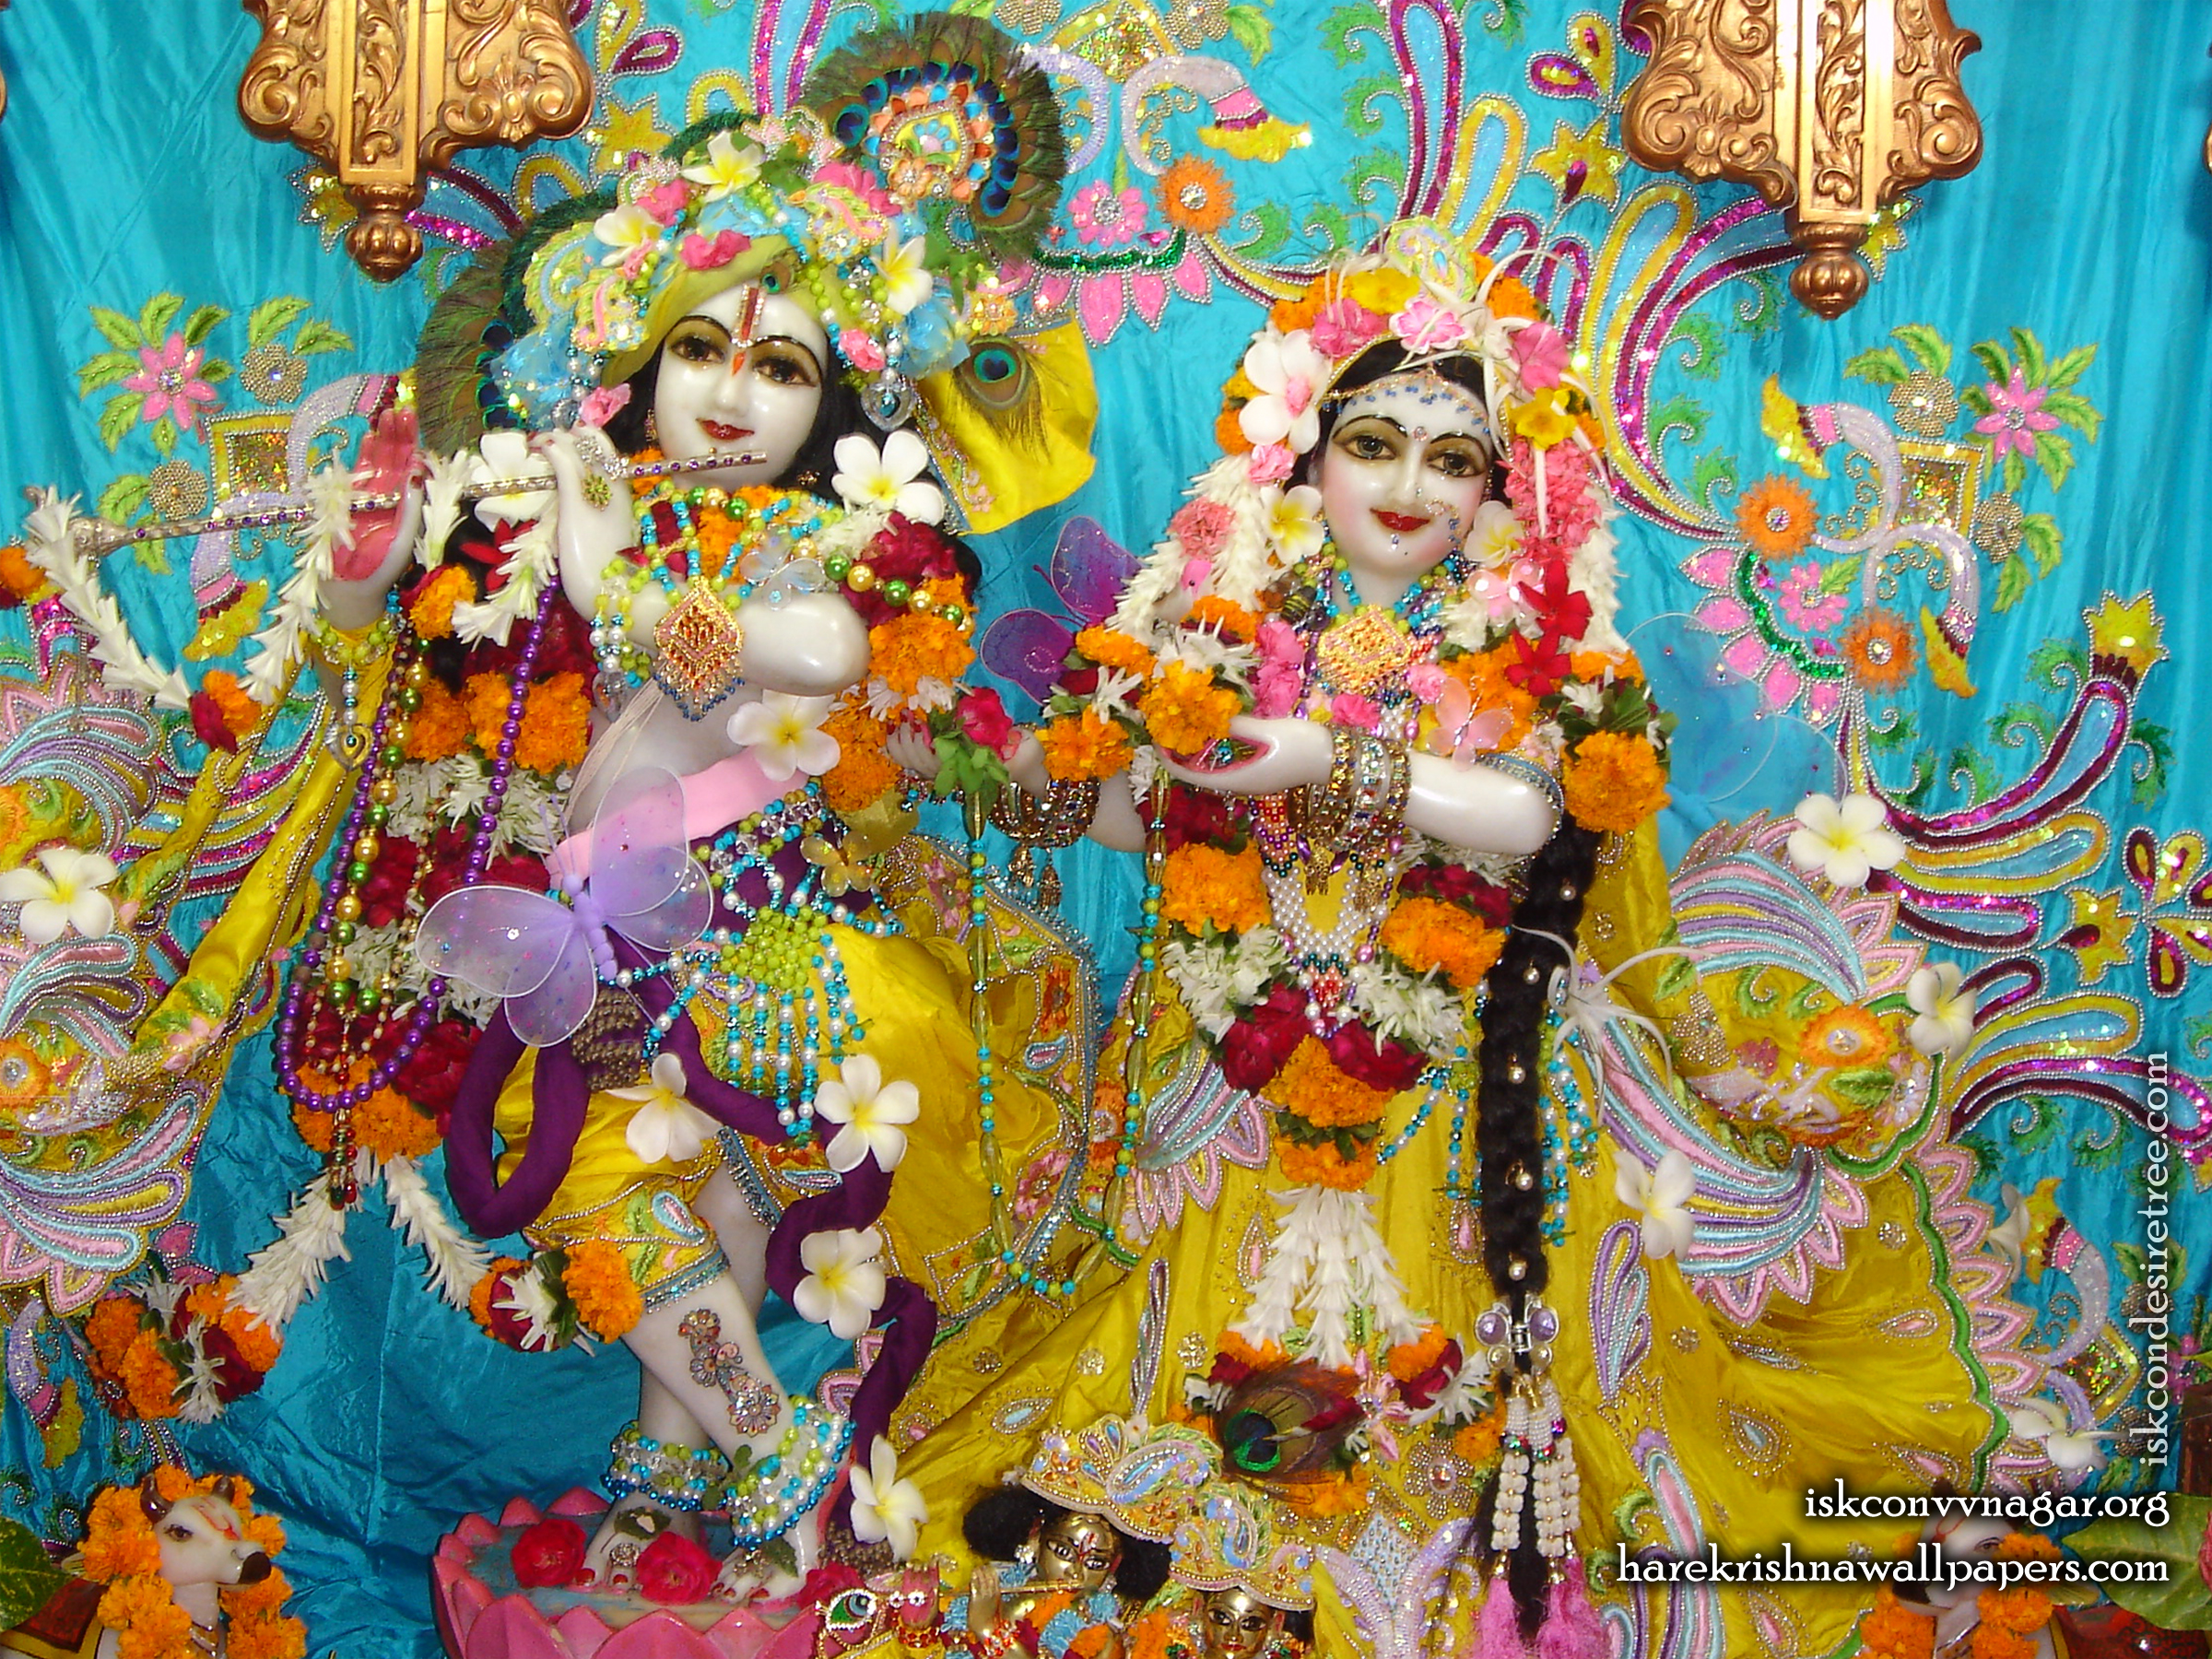 Sri Sri Radha Giridhari Wallpaper (008) Size 2400x1800 Download